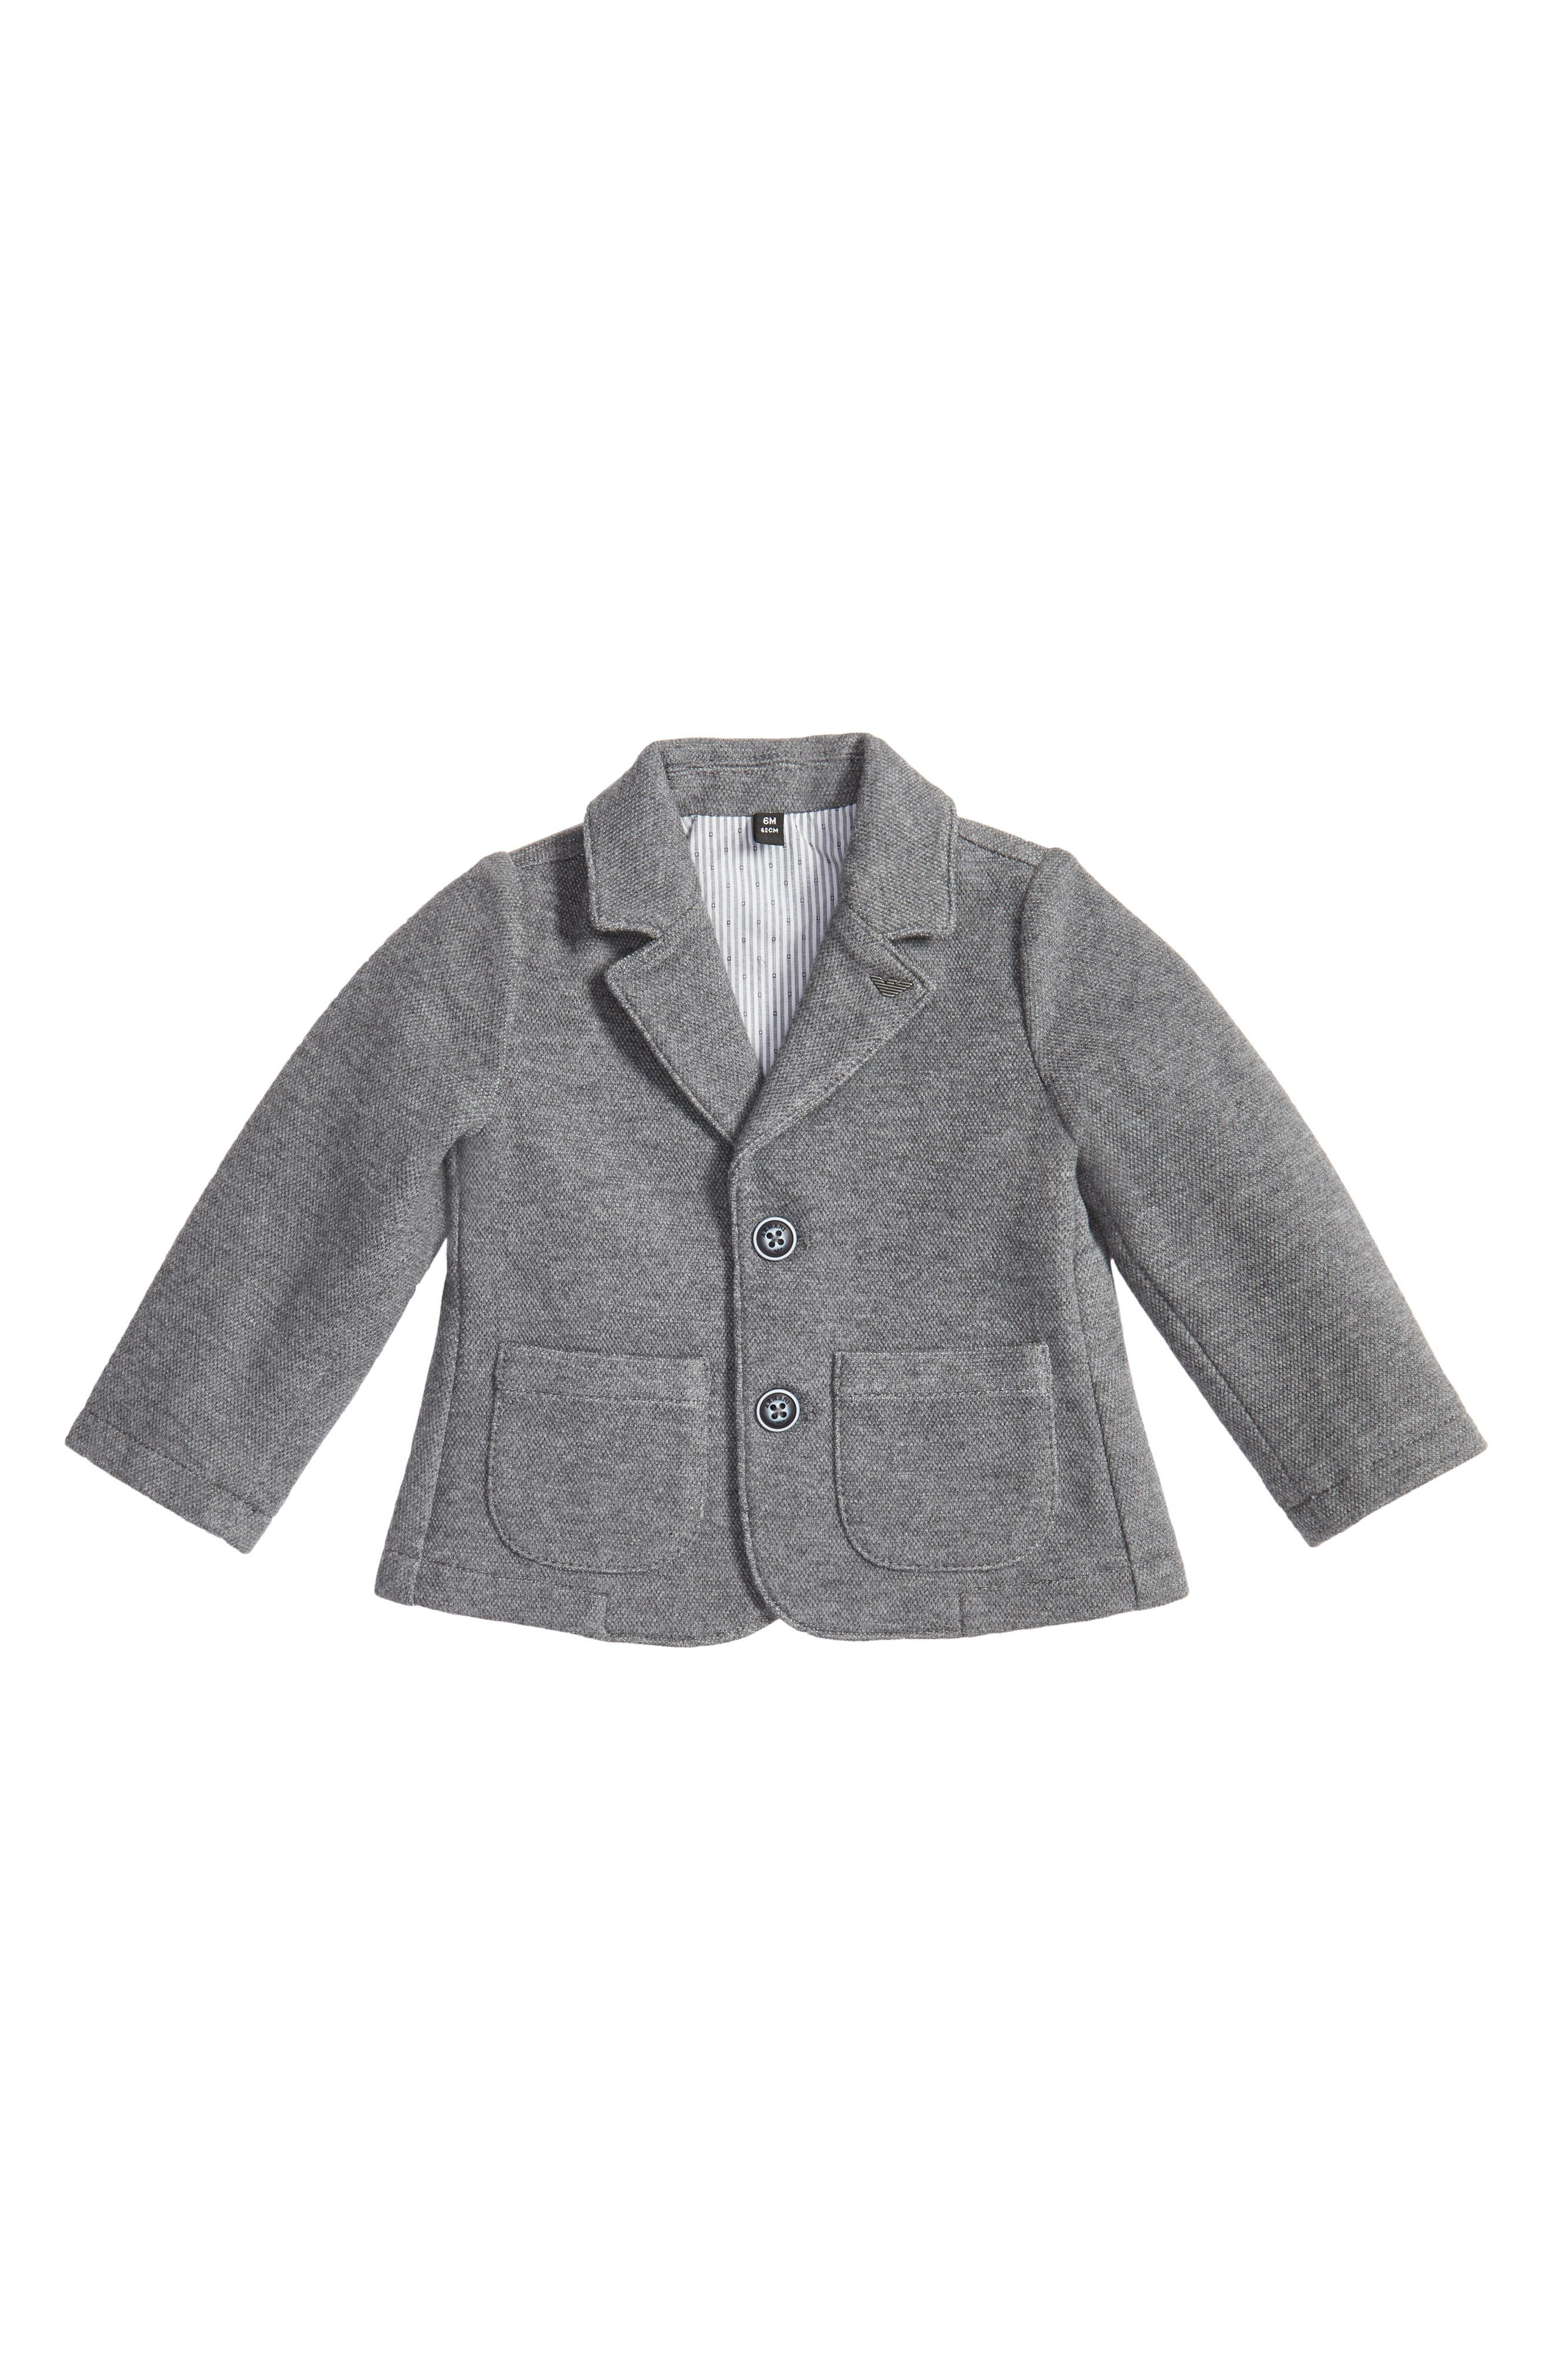 Piqué Knit Blazer,                         Main,                         color, Grey